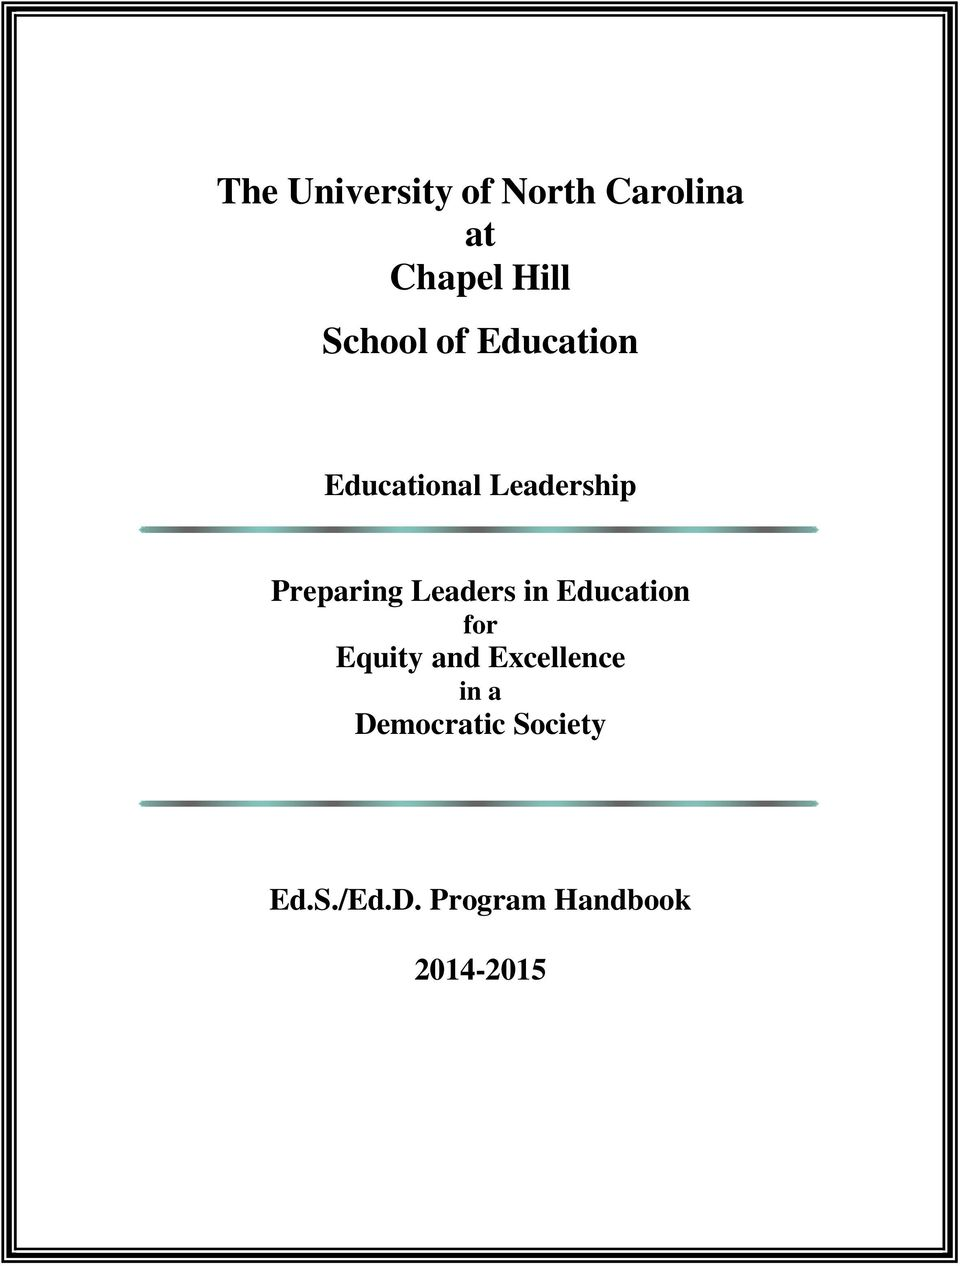 Leaders in Education for Equity and Excellence in a